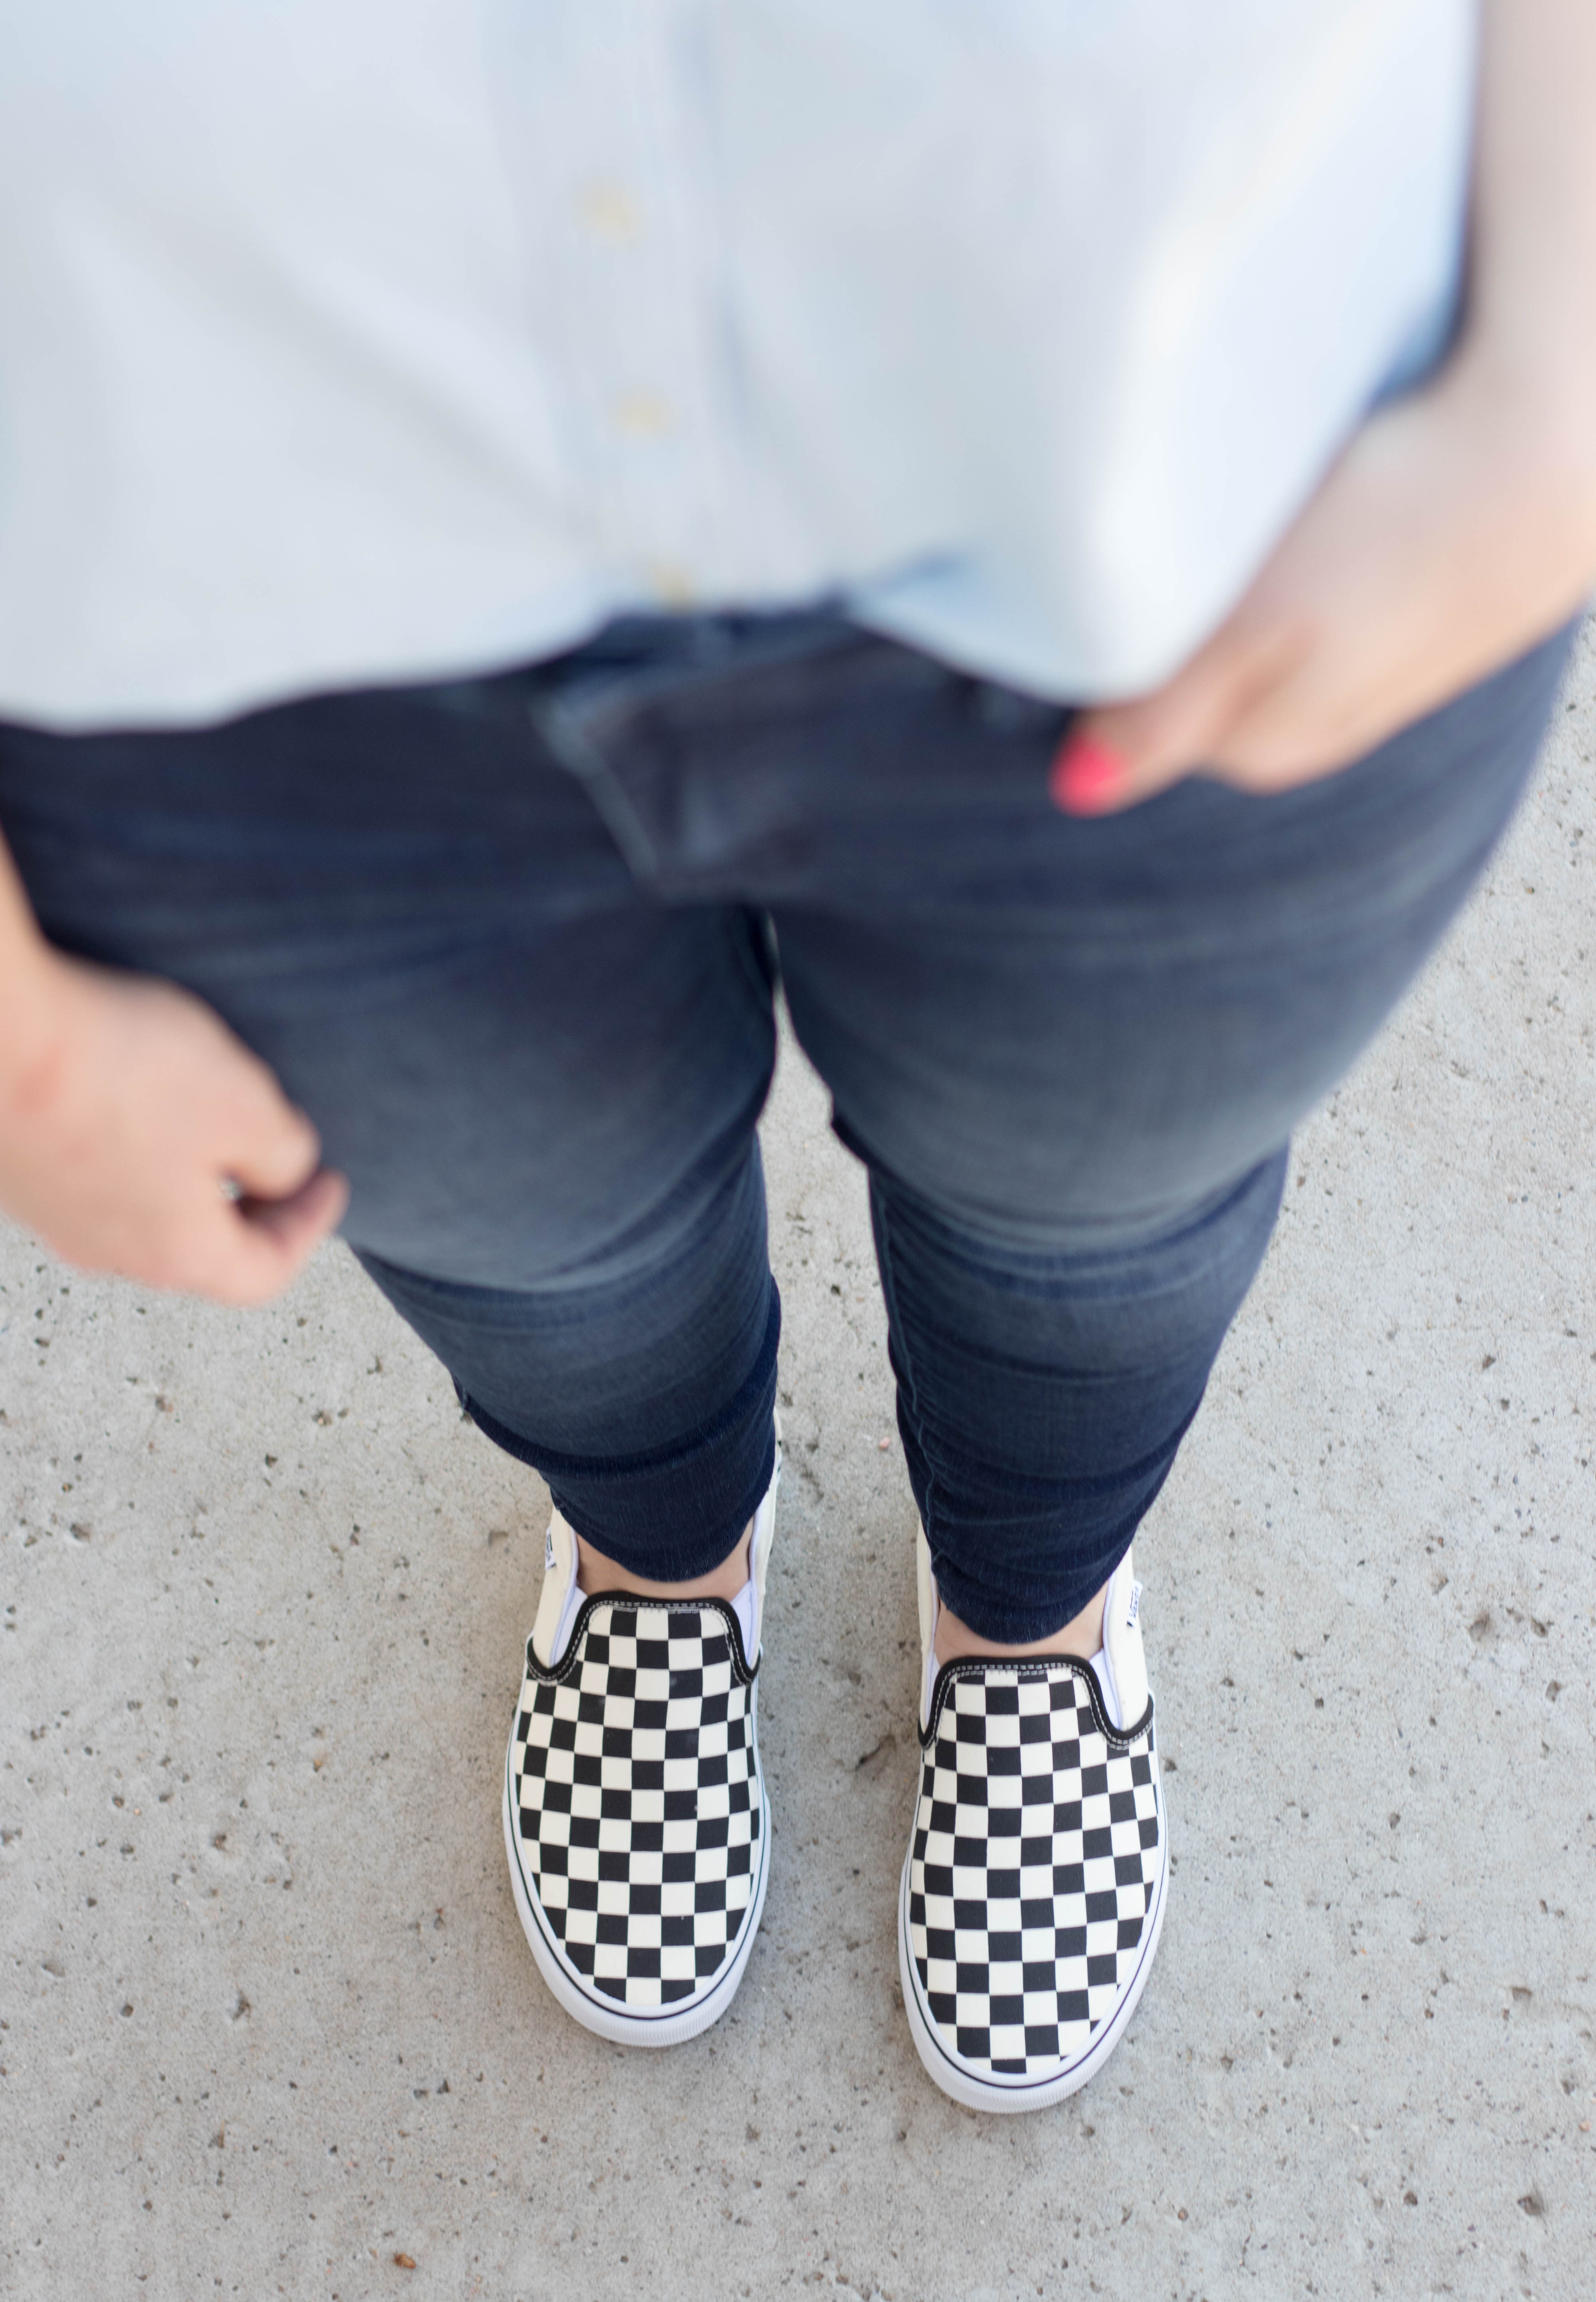 classic vans checkerboard slip ons #vans #sneakers #outfitdetails